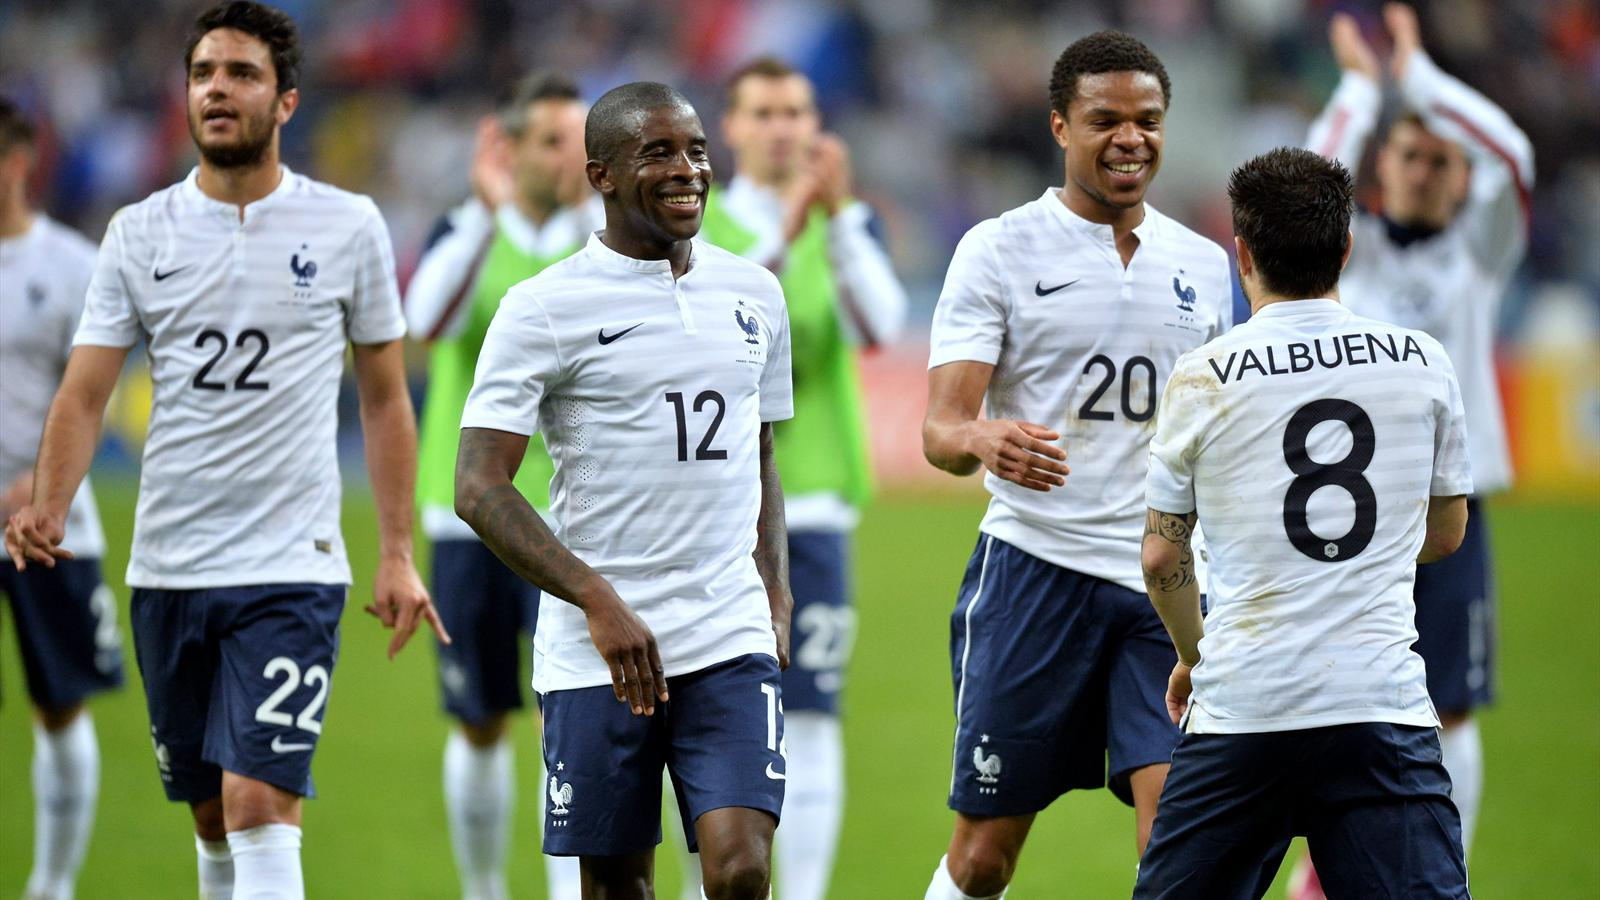 Match Équateur France en direct streaming sur TF1 et beIN Sport 1HD